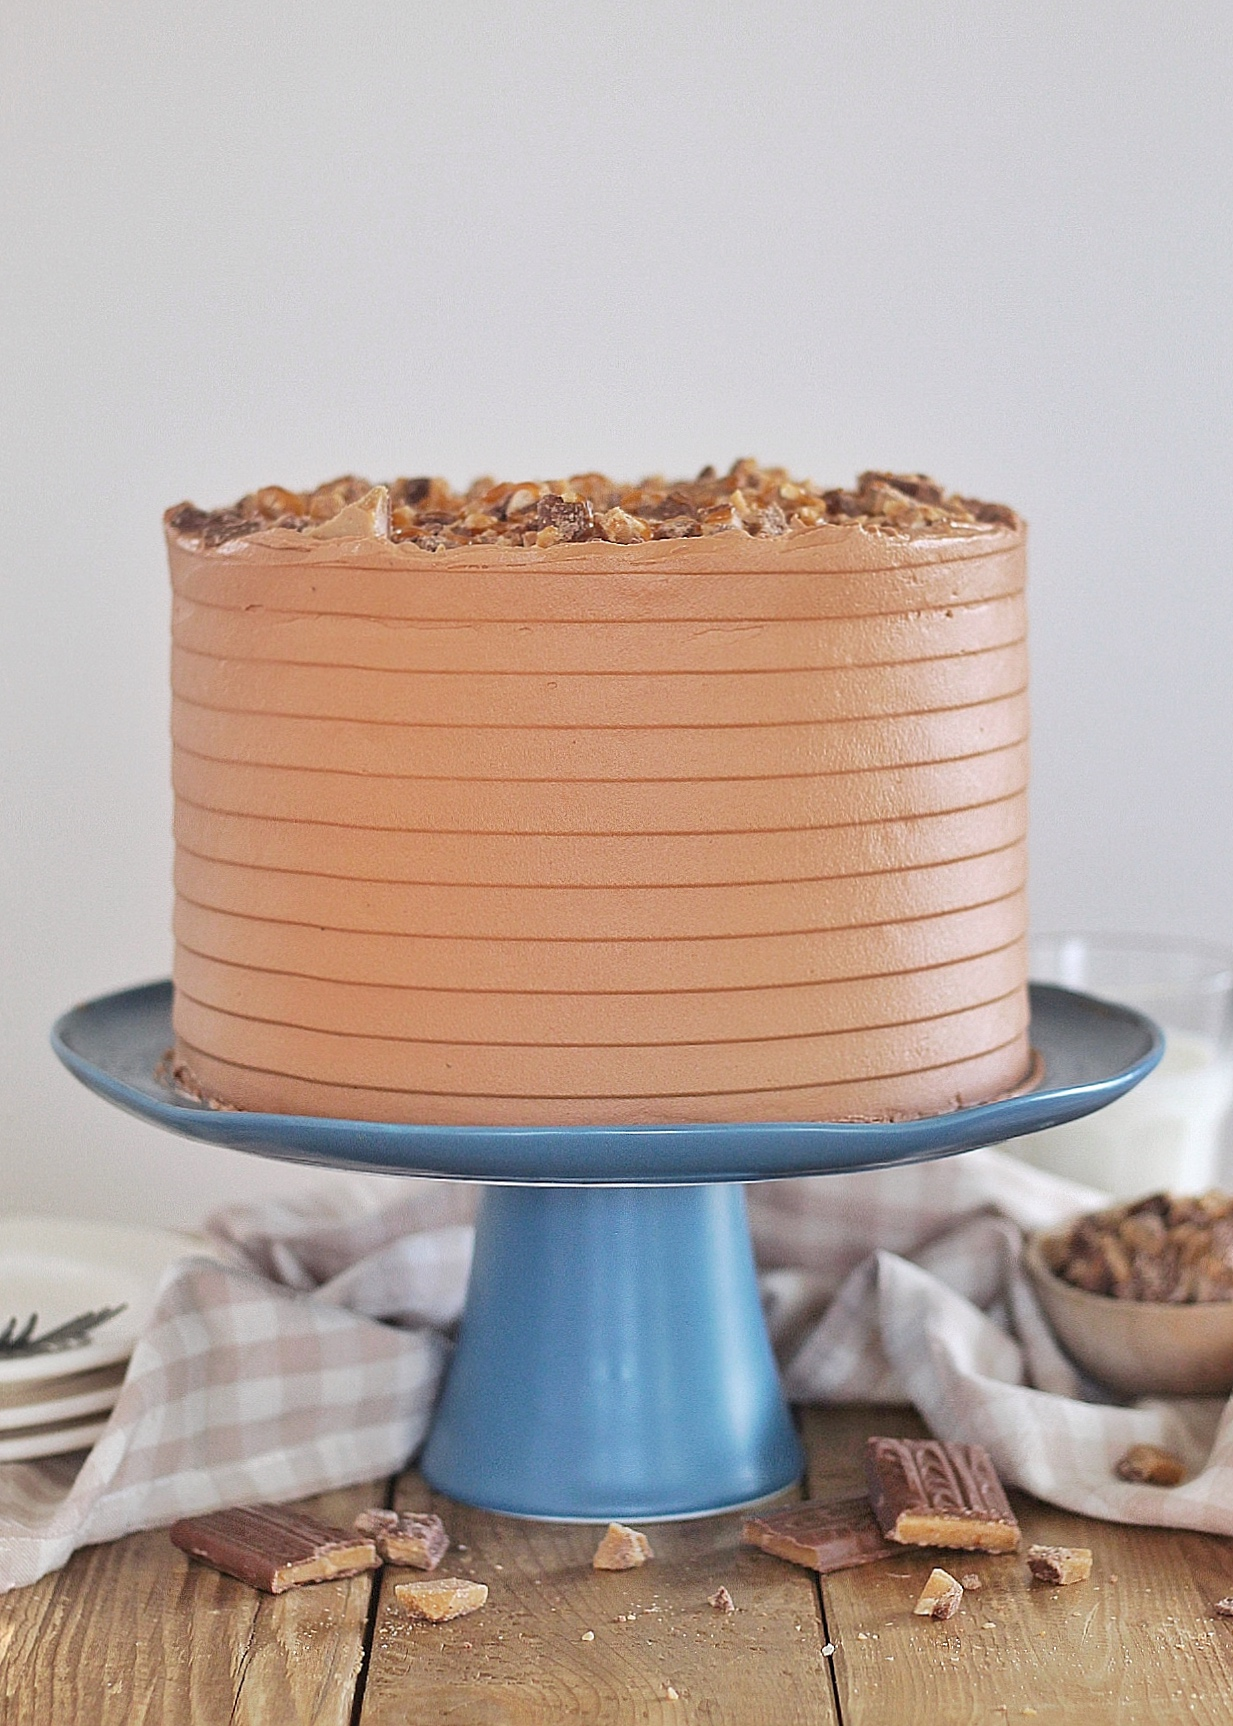 Better Than Anything Cake - also known as Better Than Sex Cake, this chocolate cake is next level with salted caramel soaked into the layers and whipped cream, toffee candy and chocolate caramel buttercream stacked on top! #betterthananythingcake #betterthansexcake #chocolatecake #chocolatebuttercream #bestchocolatecake